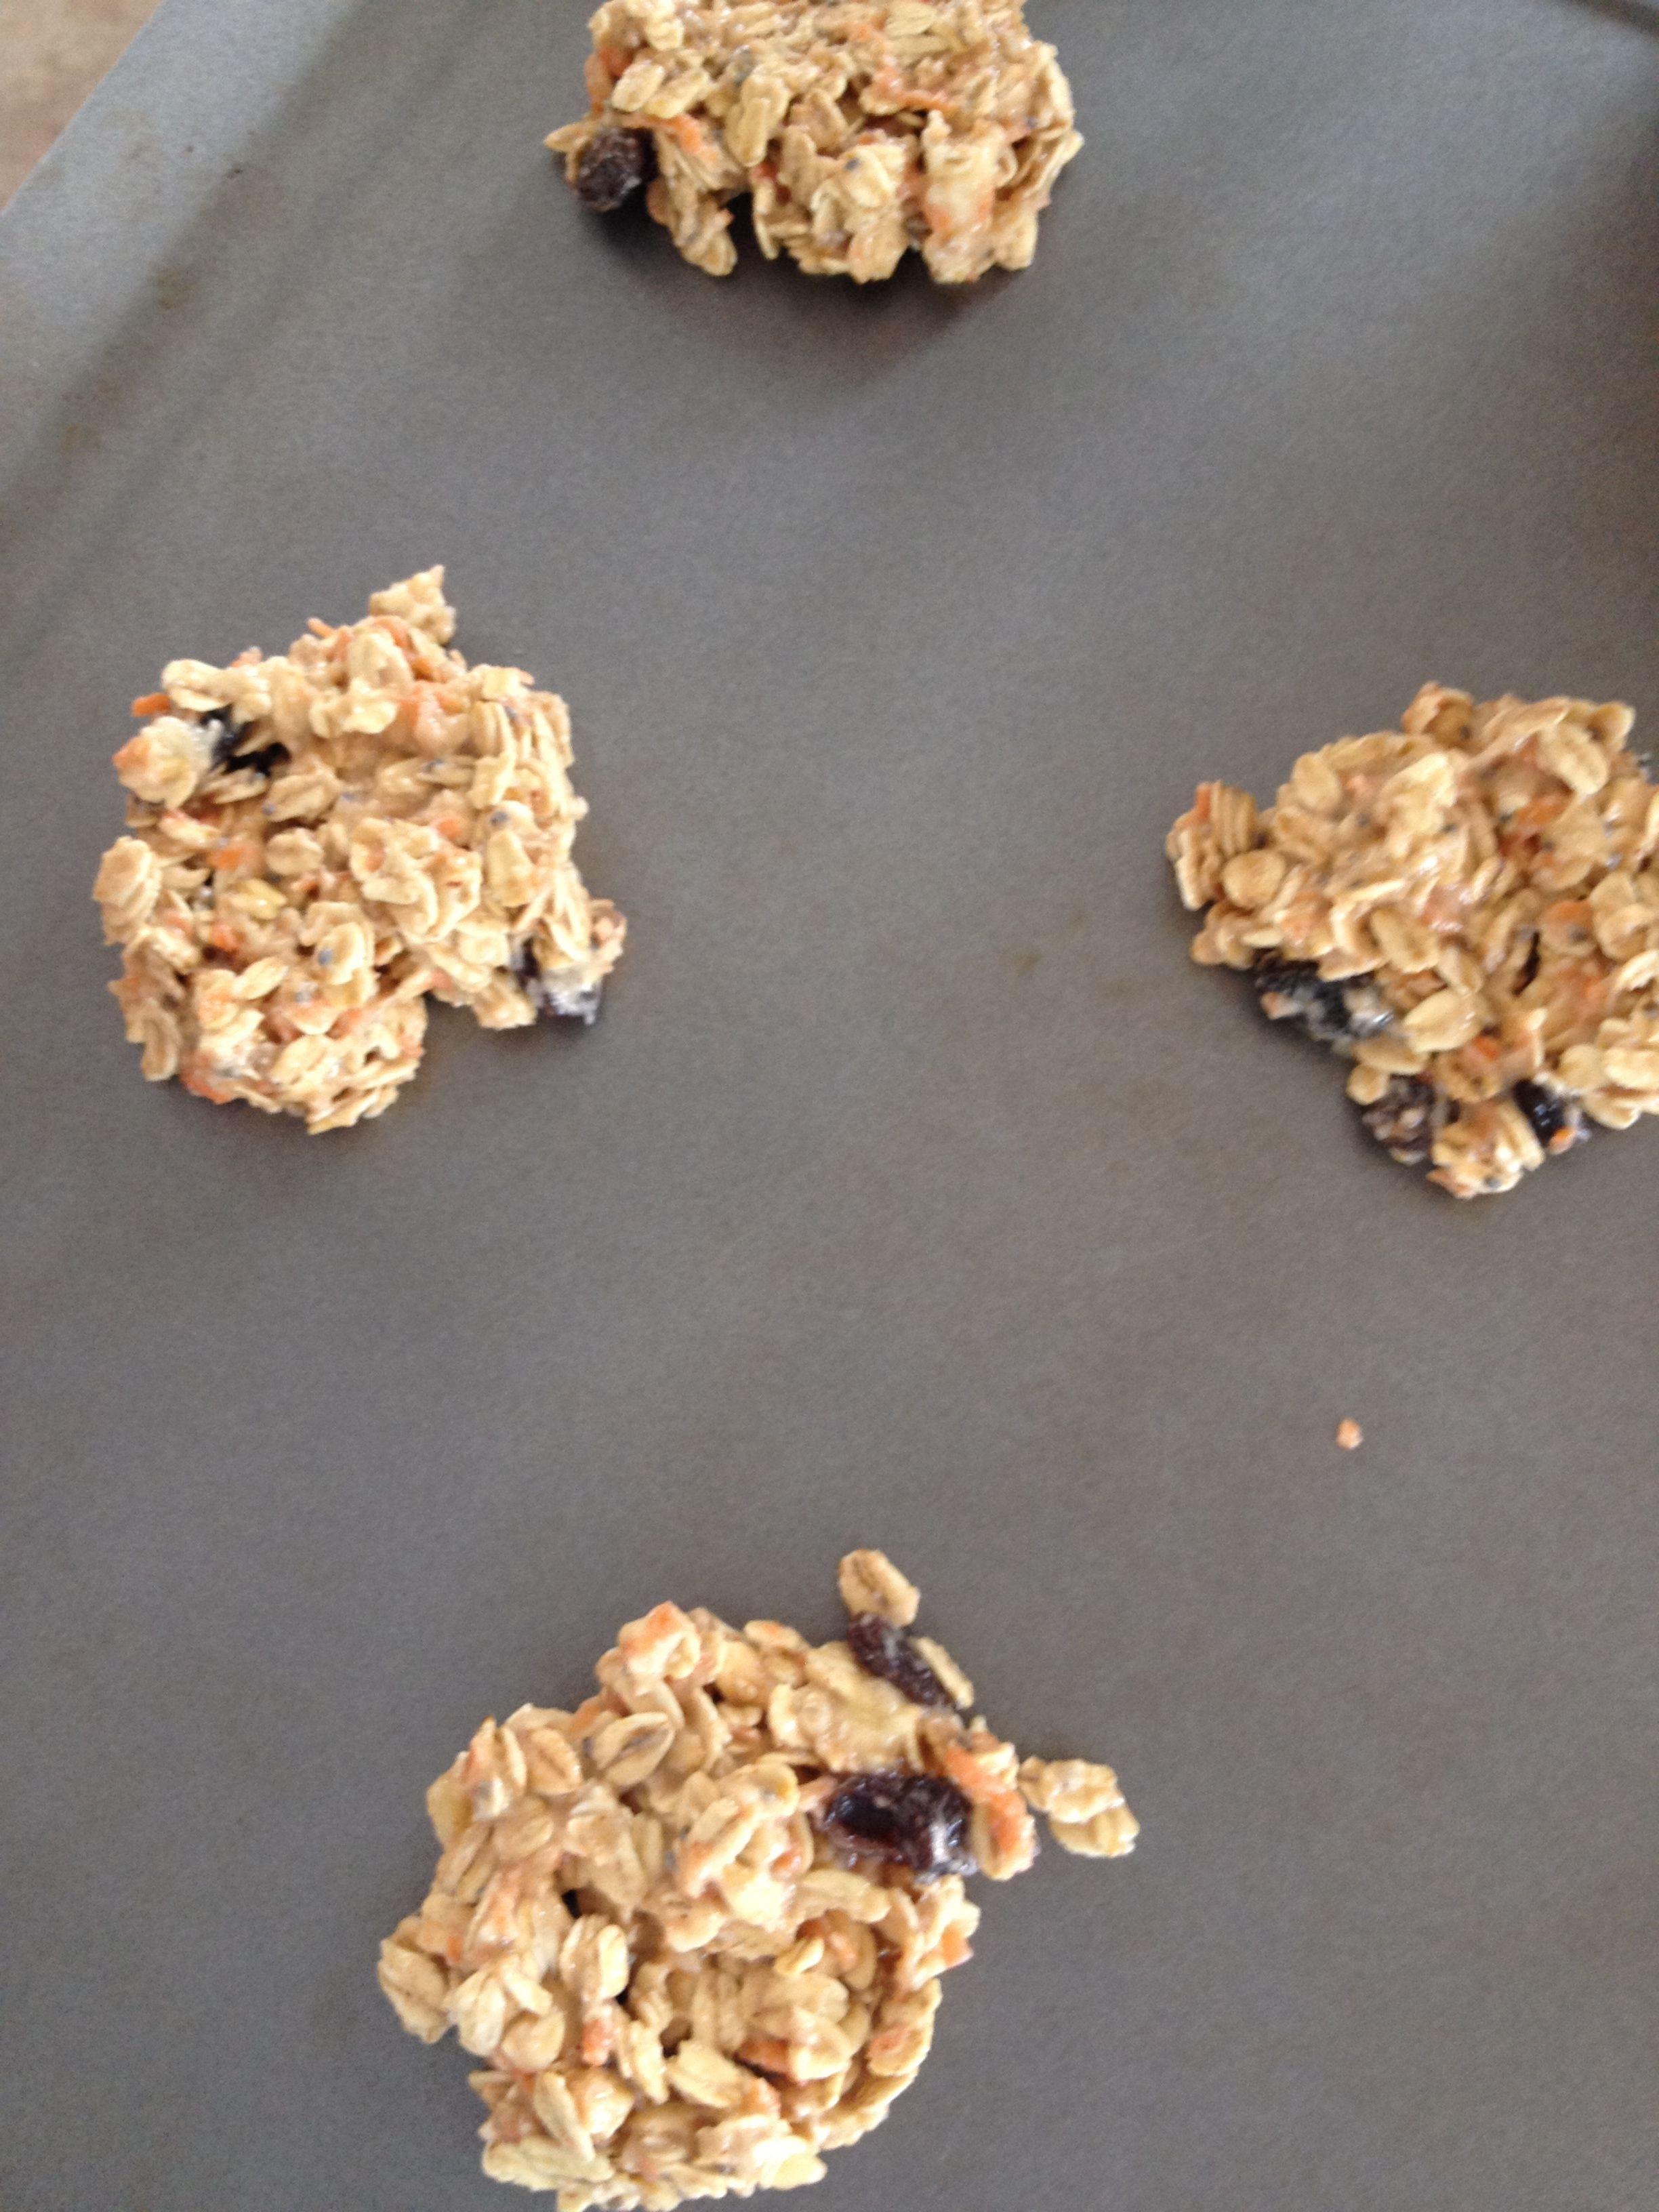 Carrot cake cookies almond butter or better than pb or